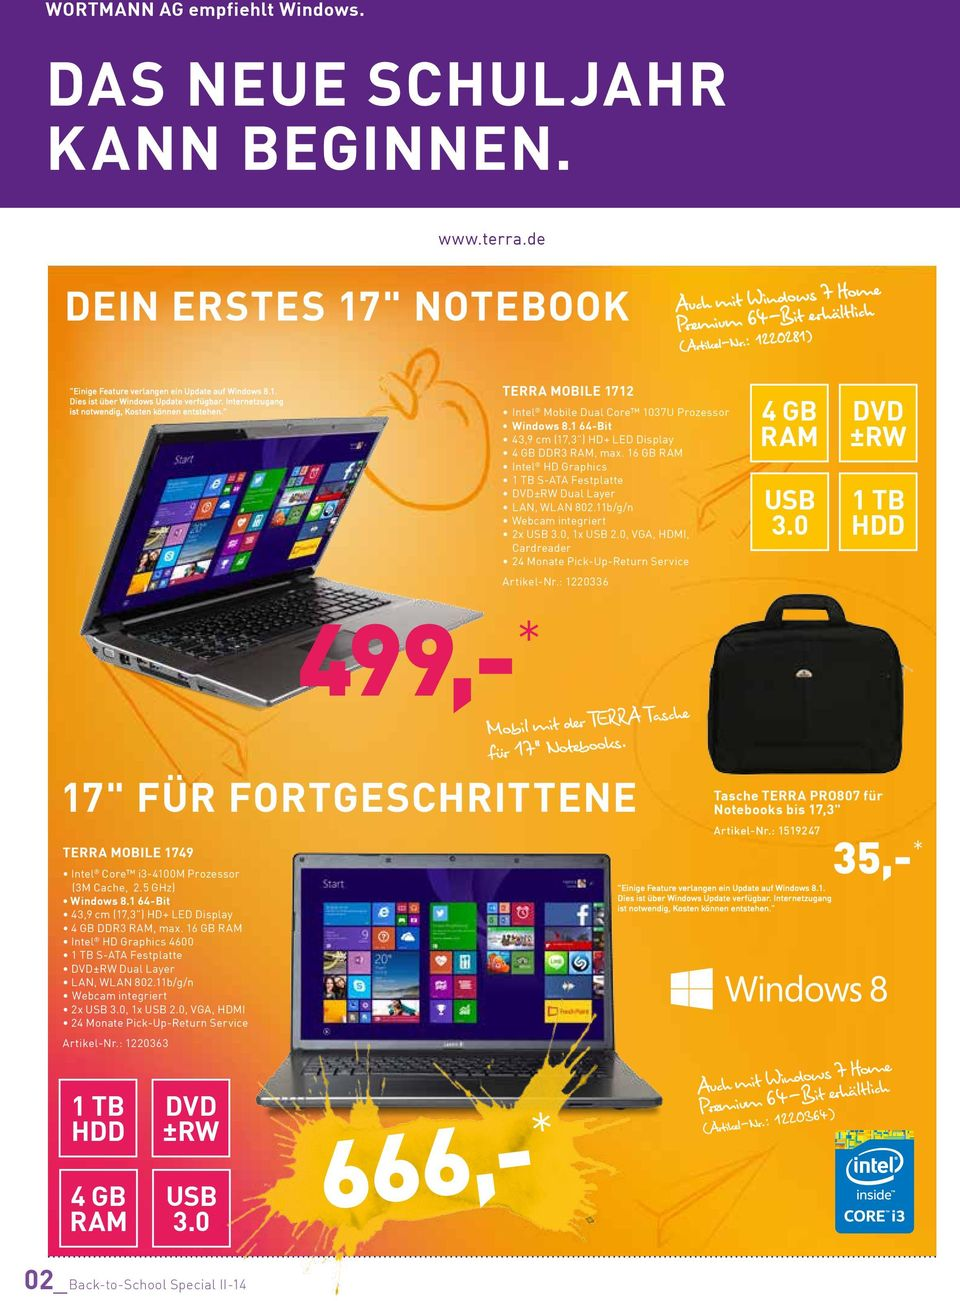 """ TERRA MOBILE 1712 Intel Mobile Dual Core 1037U Prozessor 43,9 cm (17,3"") HD+ LED Display DDR3, max. 16 GB Intel HD Graphics 1 TB S-ATA Festplatte DVD±RW Dual Layer LAN, WLAN 802."